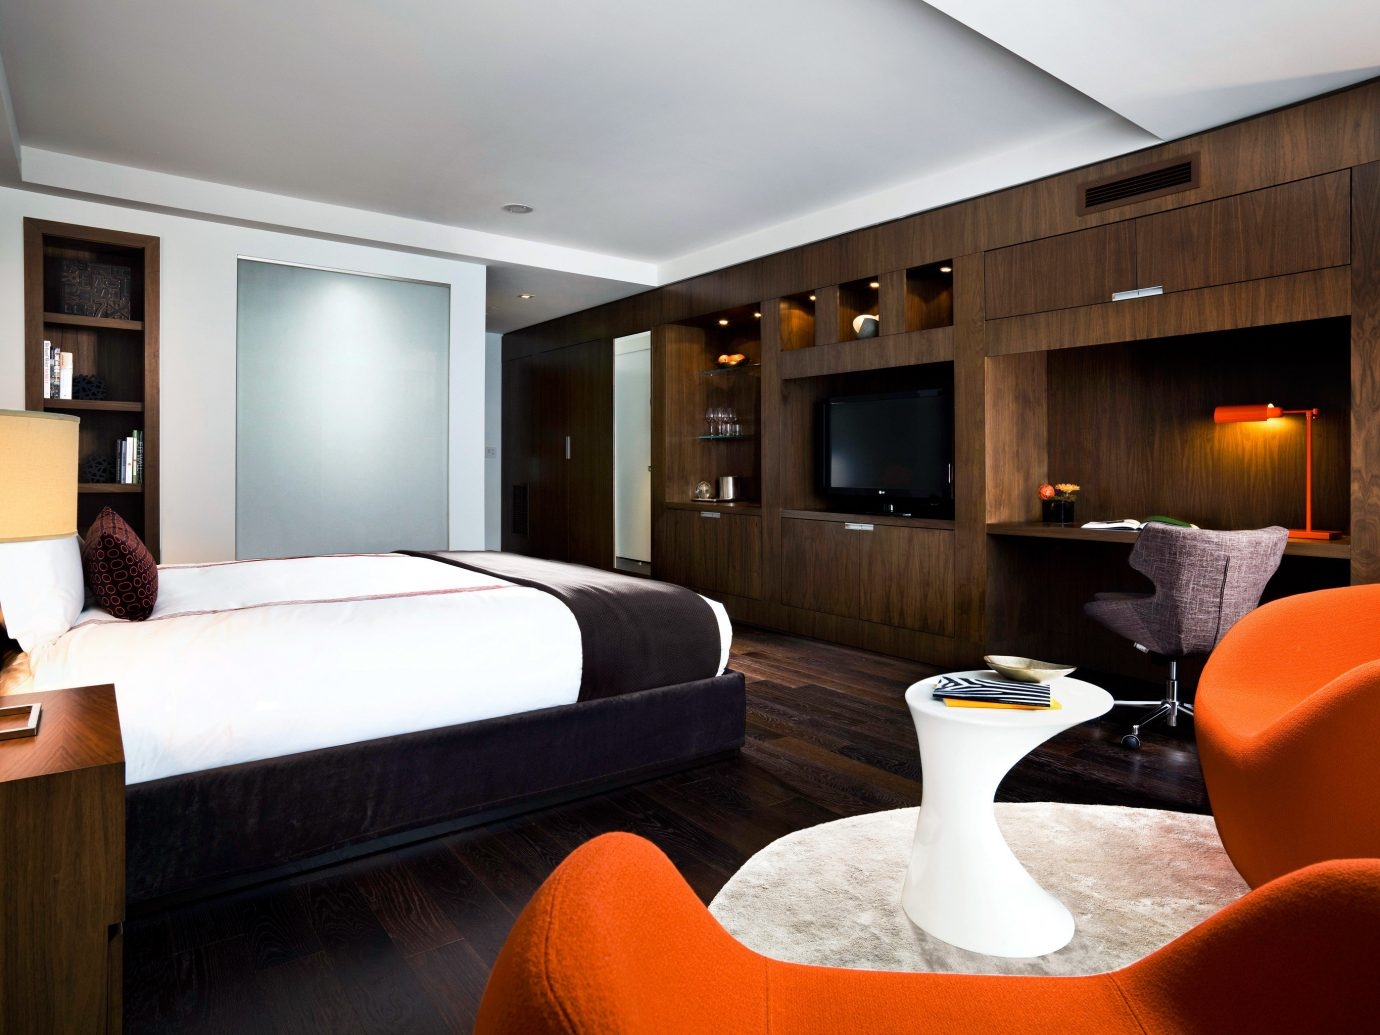 Bedroom Canada City Hip Hotels Modern Toronto indoor ceiling wall room property Suite yacht interior design estate living room home orange real estate passenger ship Design vehicle condominium furniture